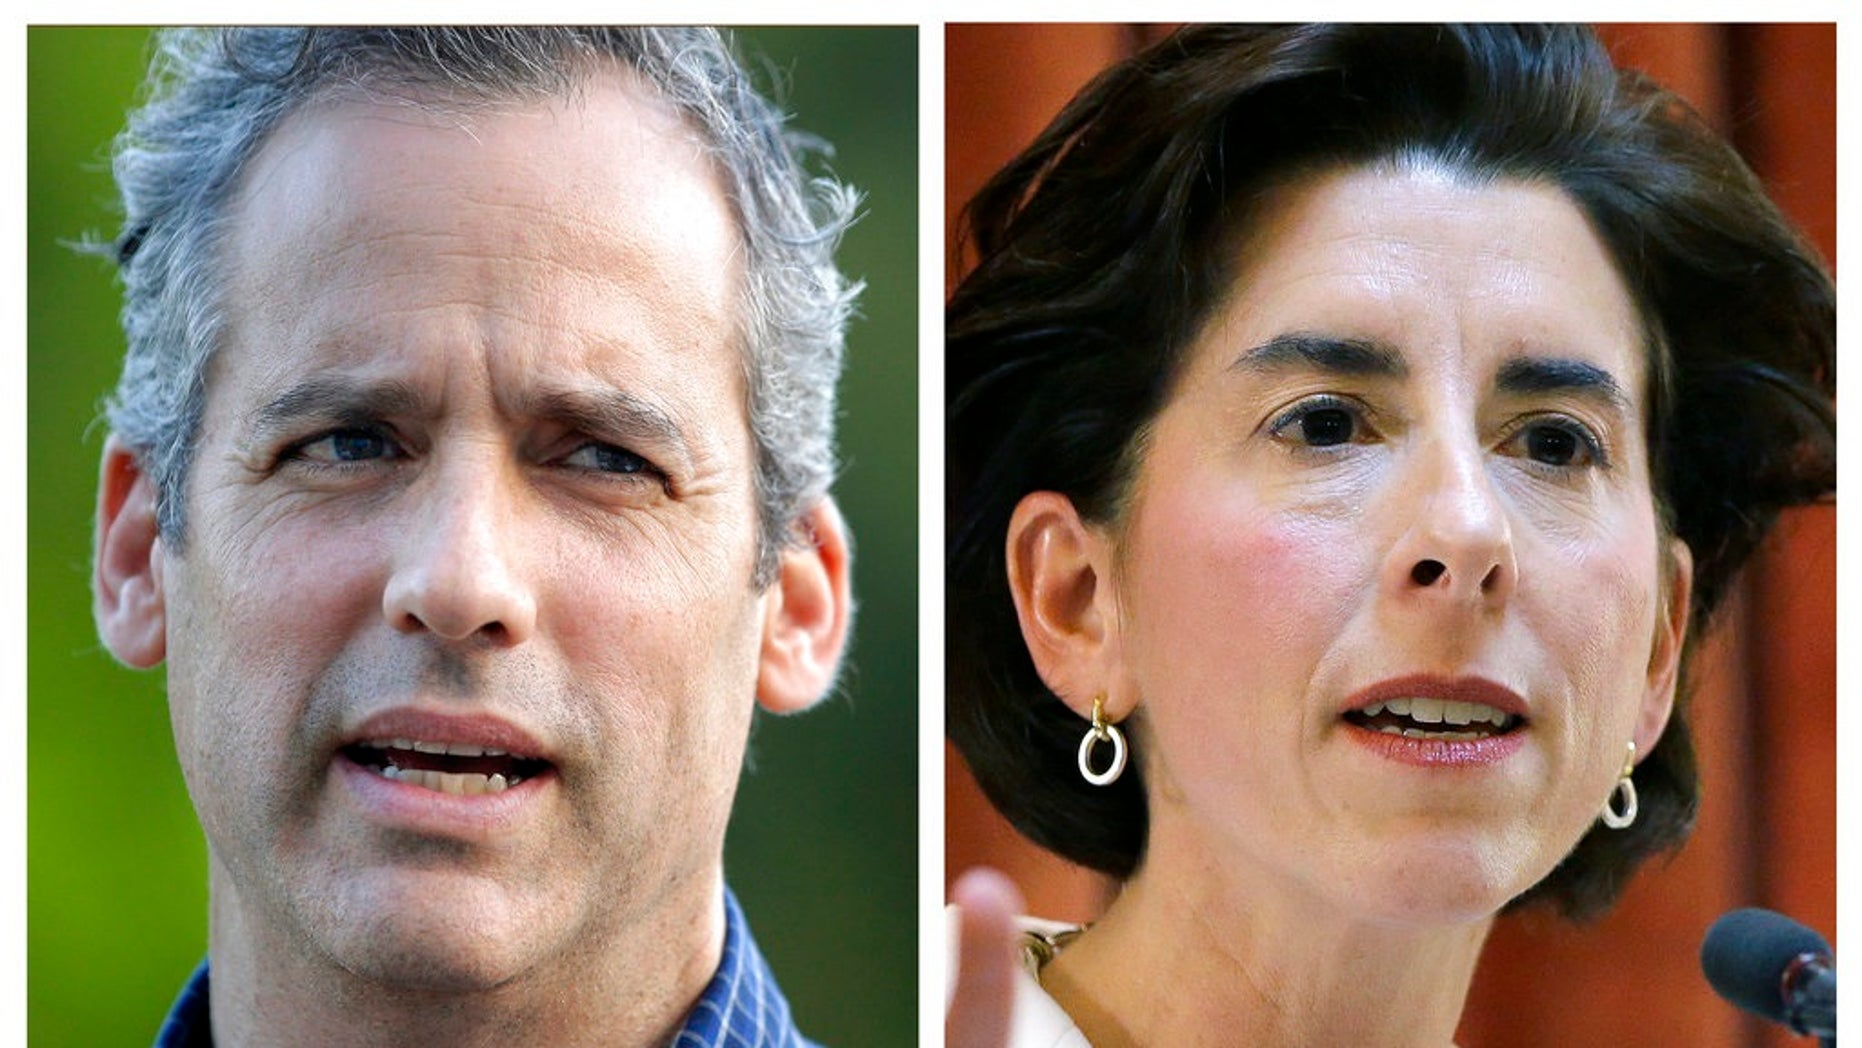 FILE - This panel of 2018 photos shows former Rhode Island Secretary of State Matt Brown, left, and Gov. Gina Raimondo. Brown, Raimondo's top challenger in the Democratic gubernatorial primary on Wednesday, Sept. 12, was defeated.